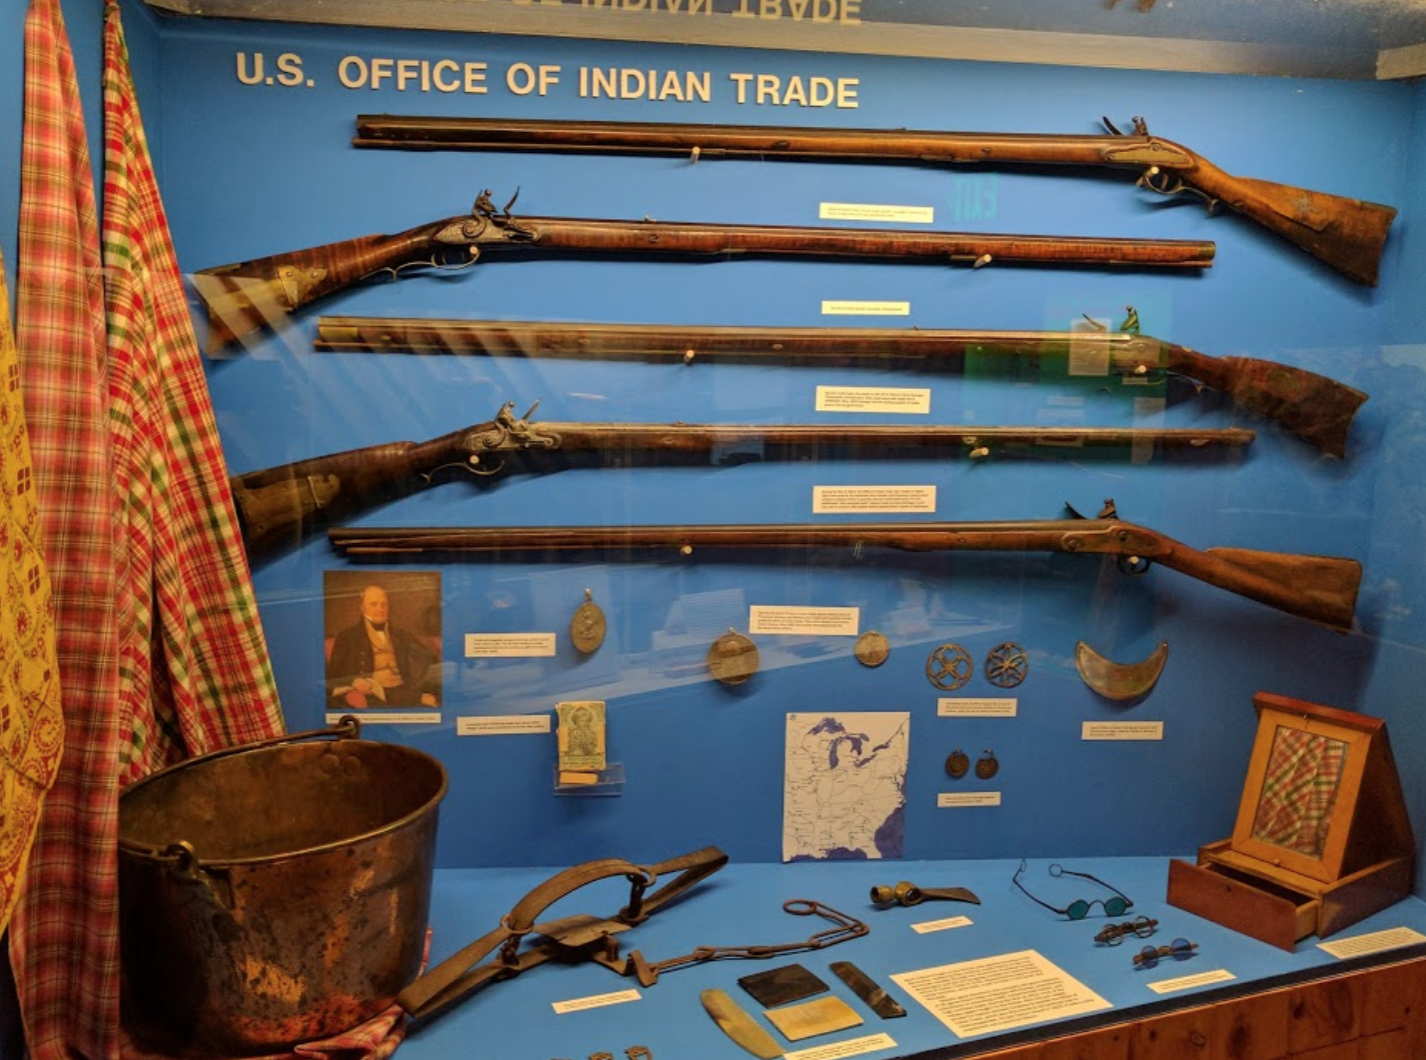 Museum of the Fur Trade image 8